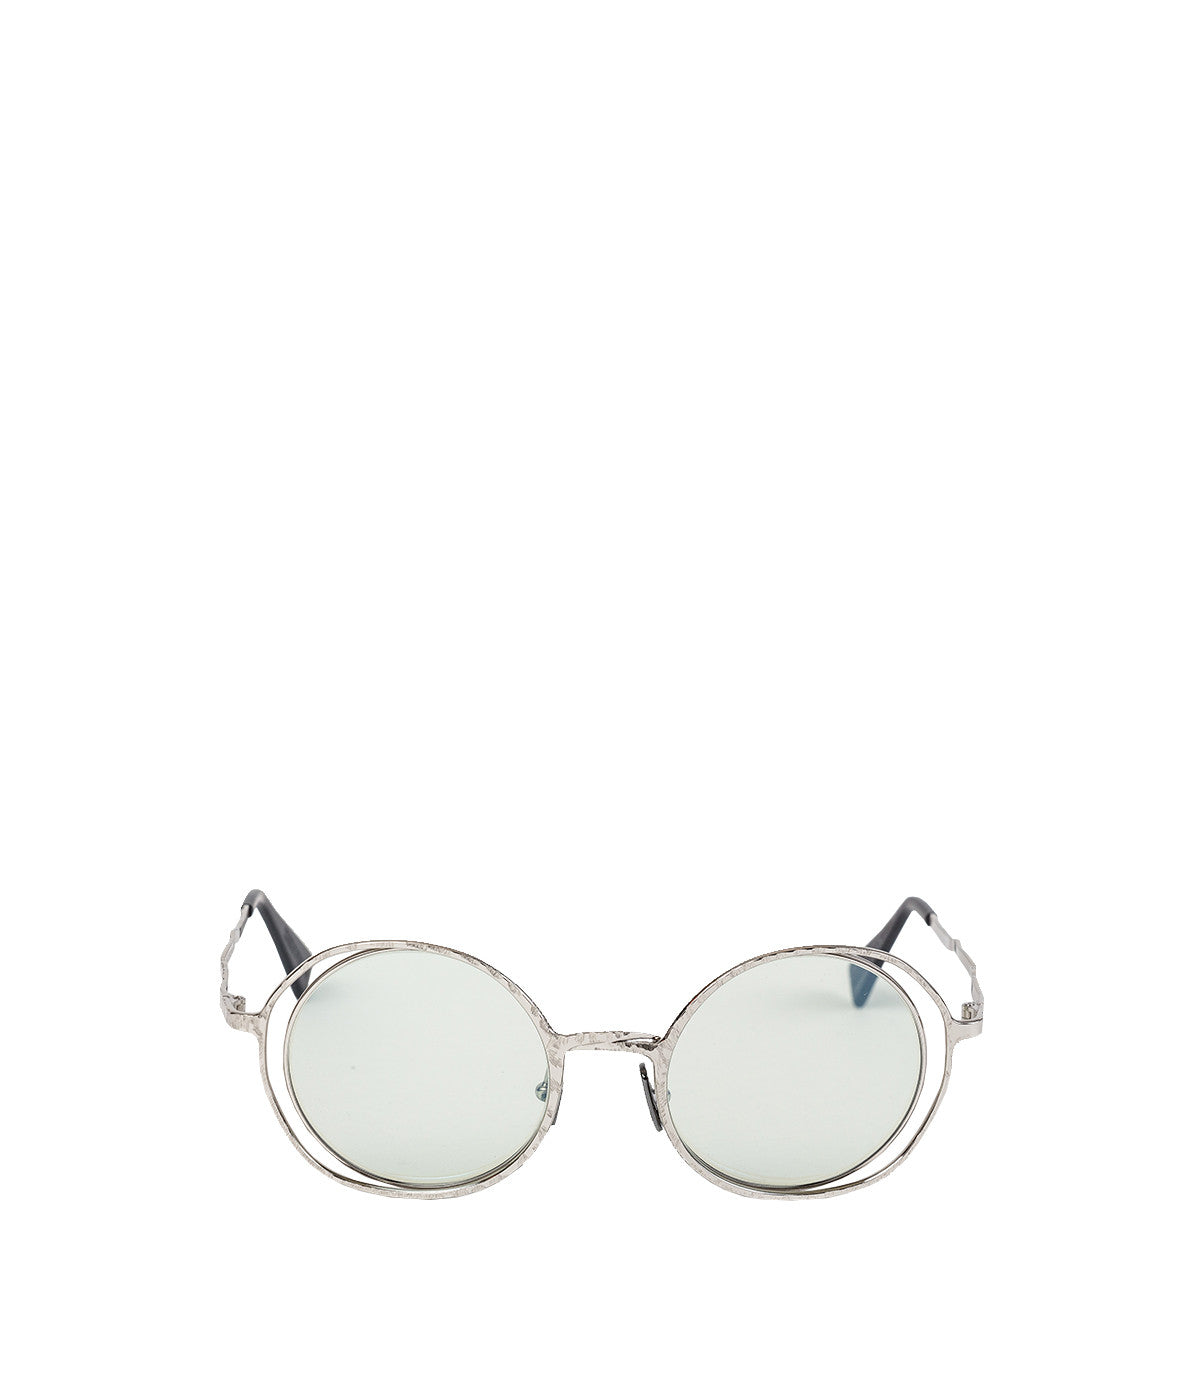 H10 Silver Metal Sunglasses